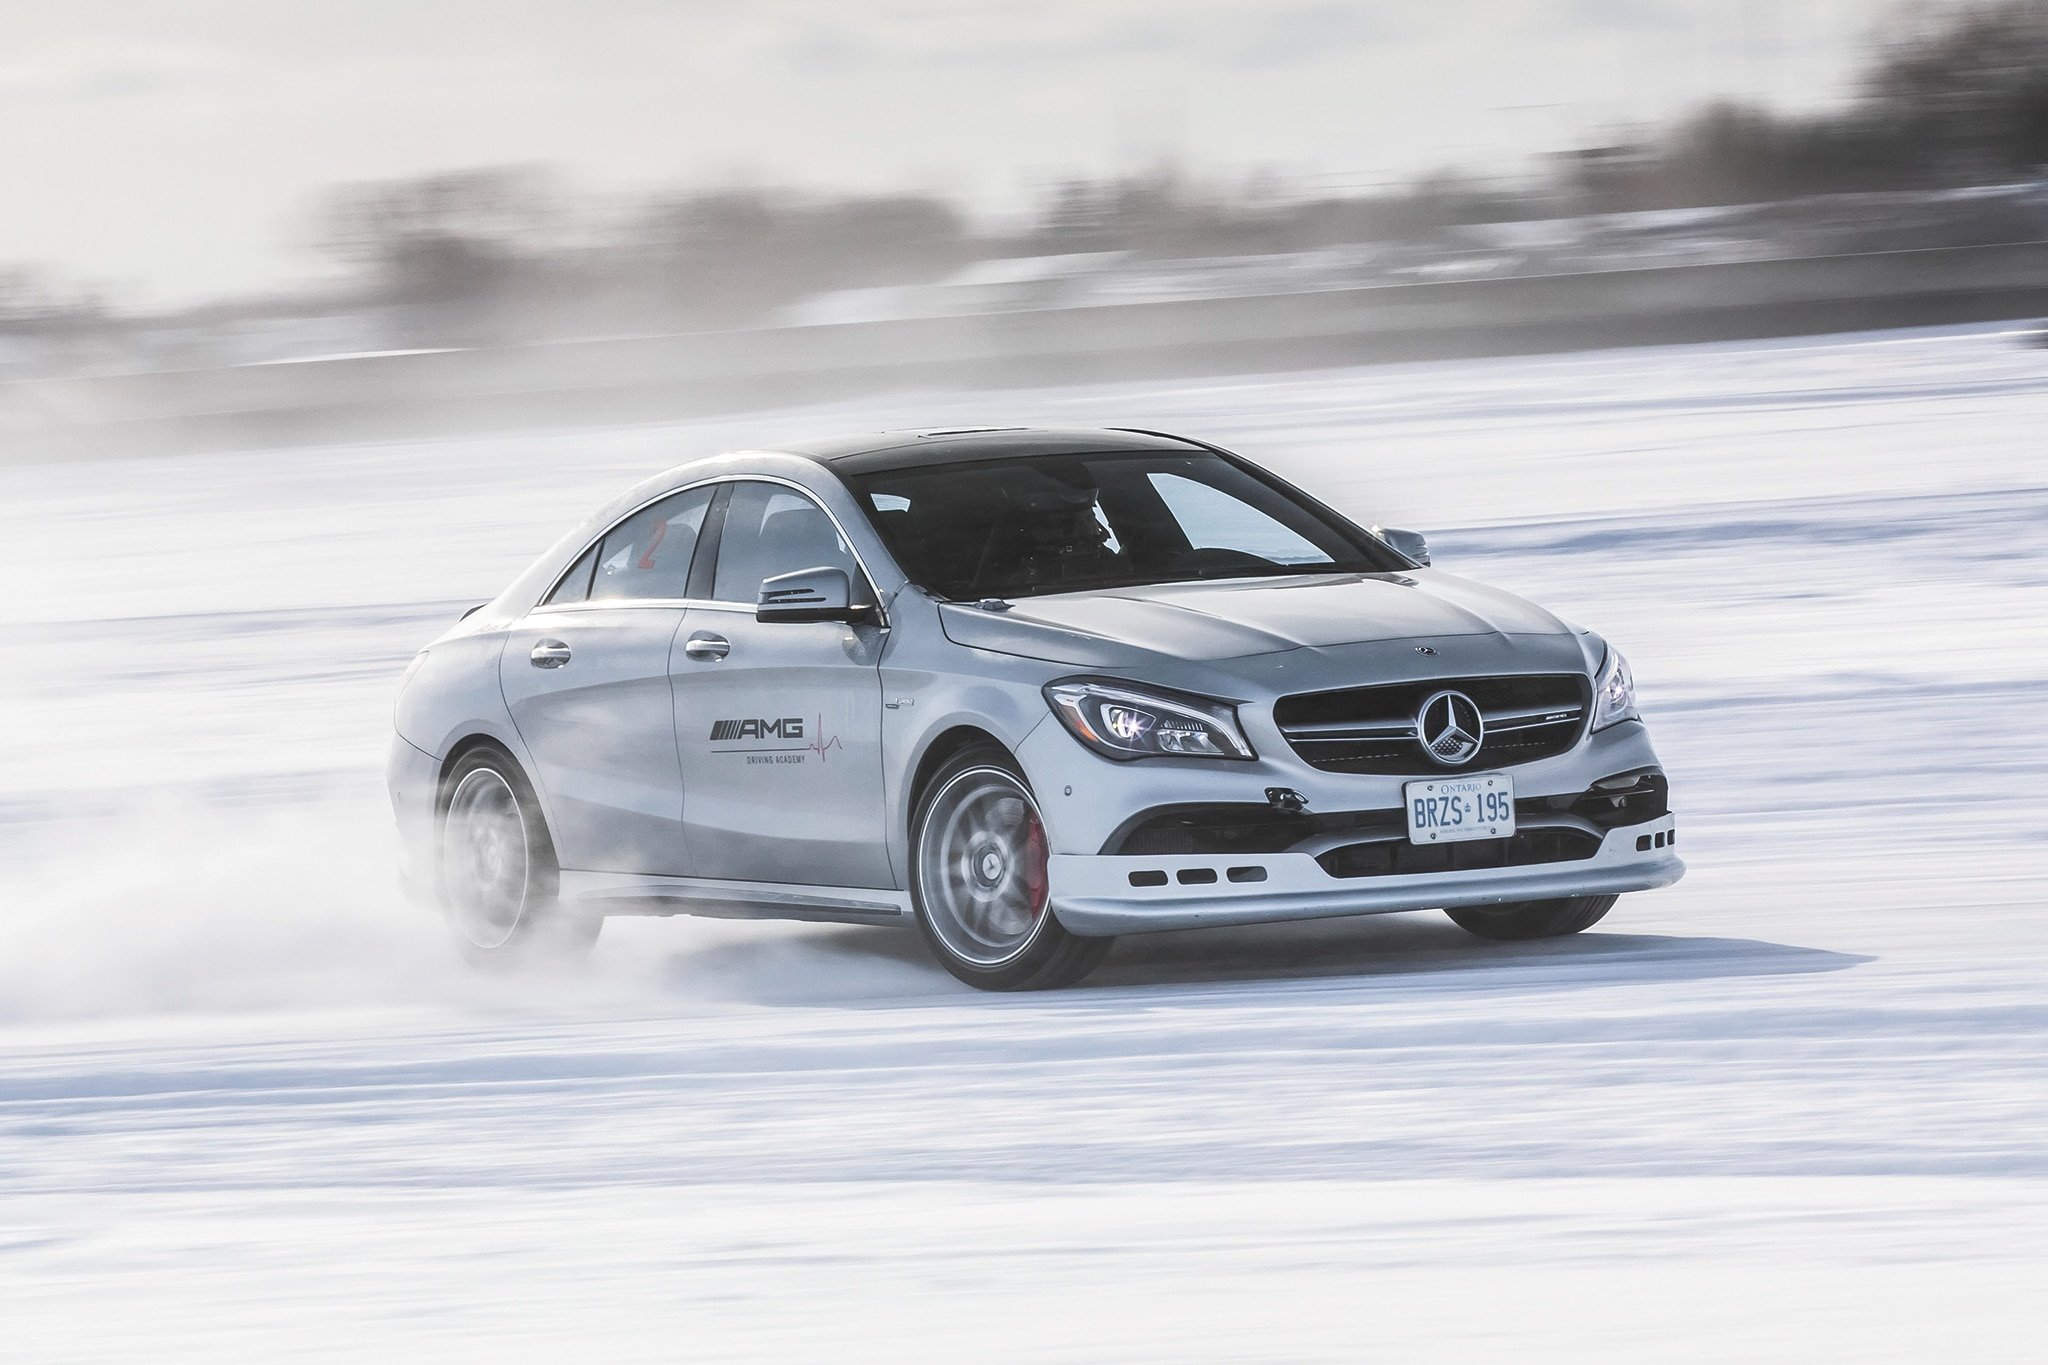 Mercedes AMG Winter Sporting Driving School 01